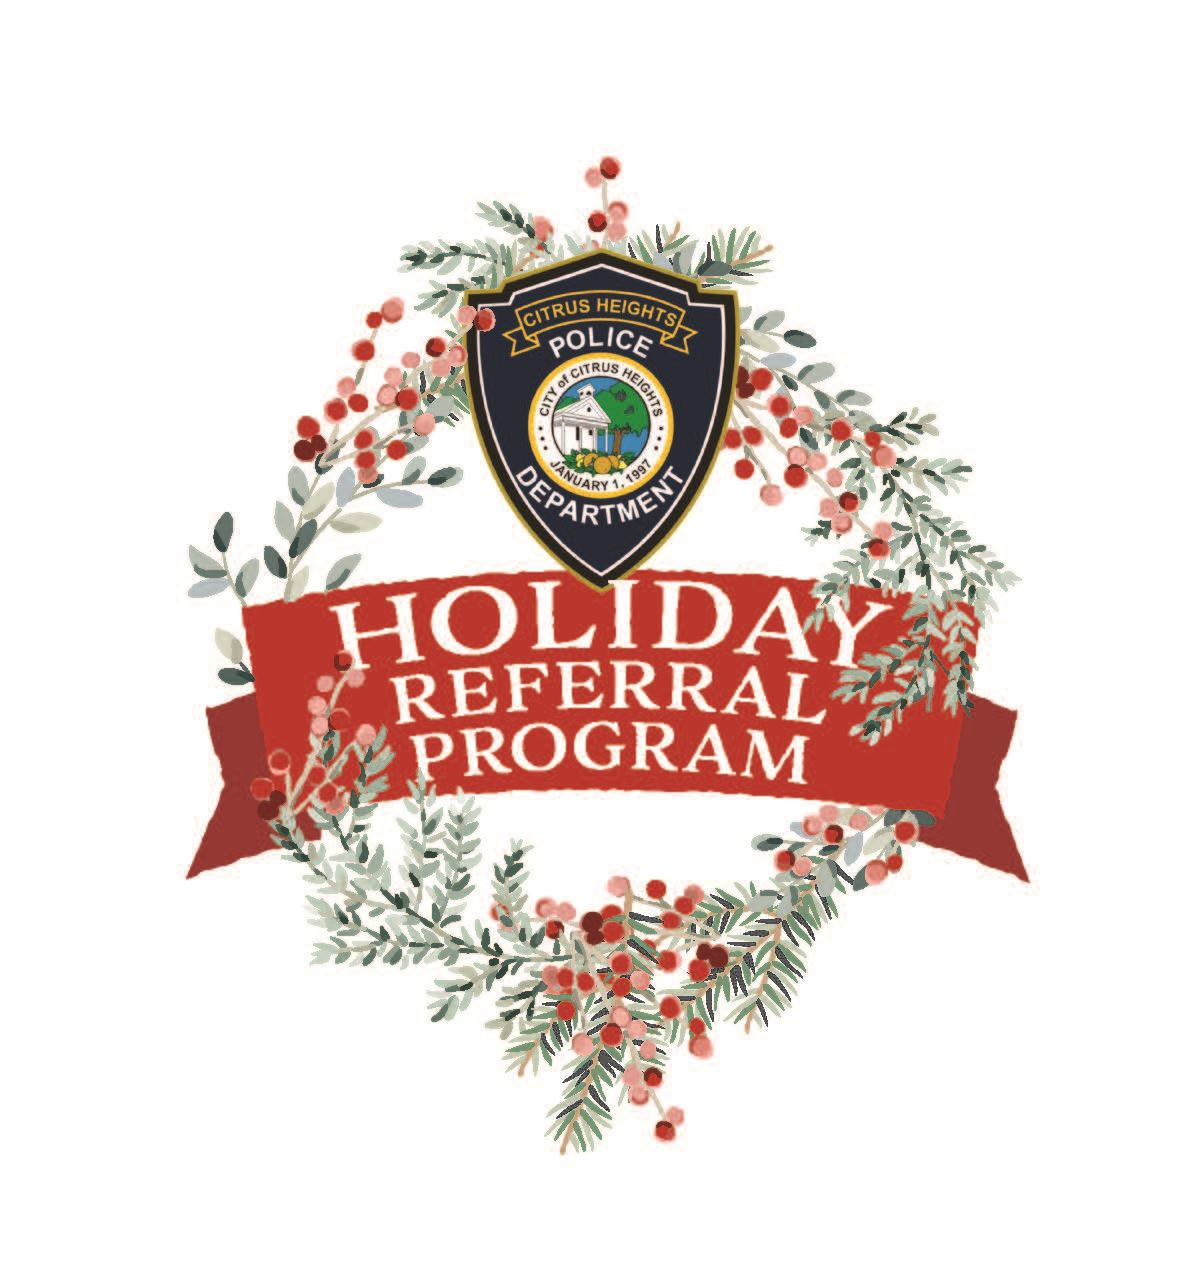 CHPD_HolidayReferralProgram_GraphicVector